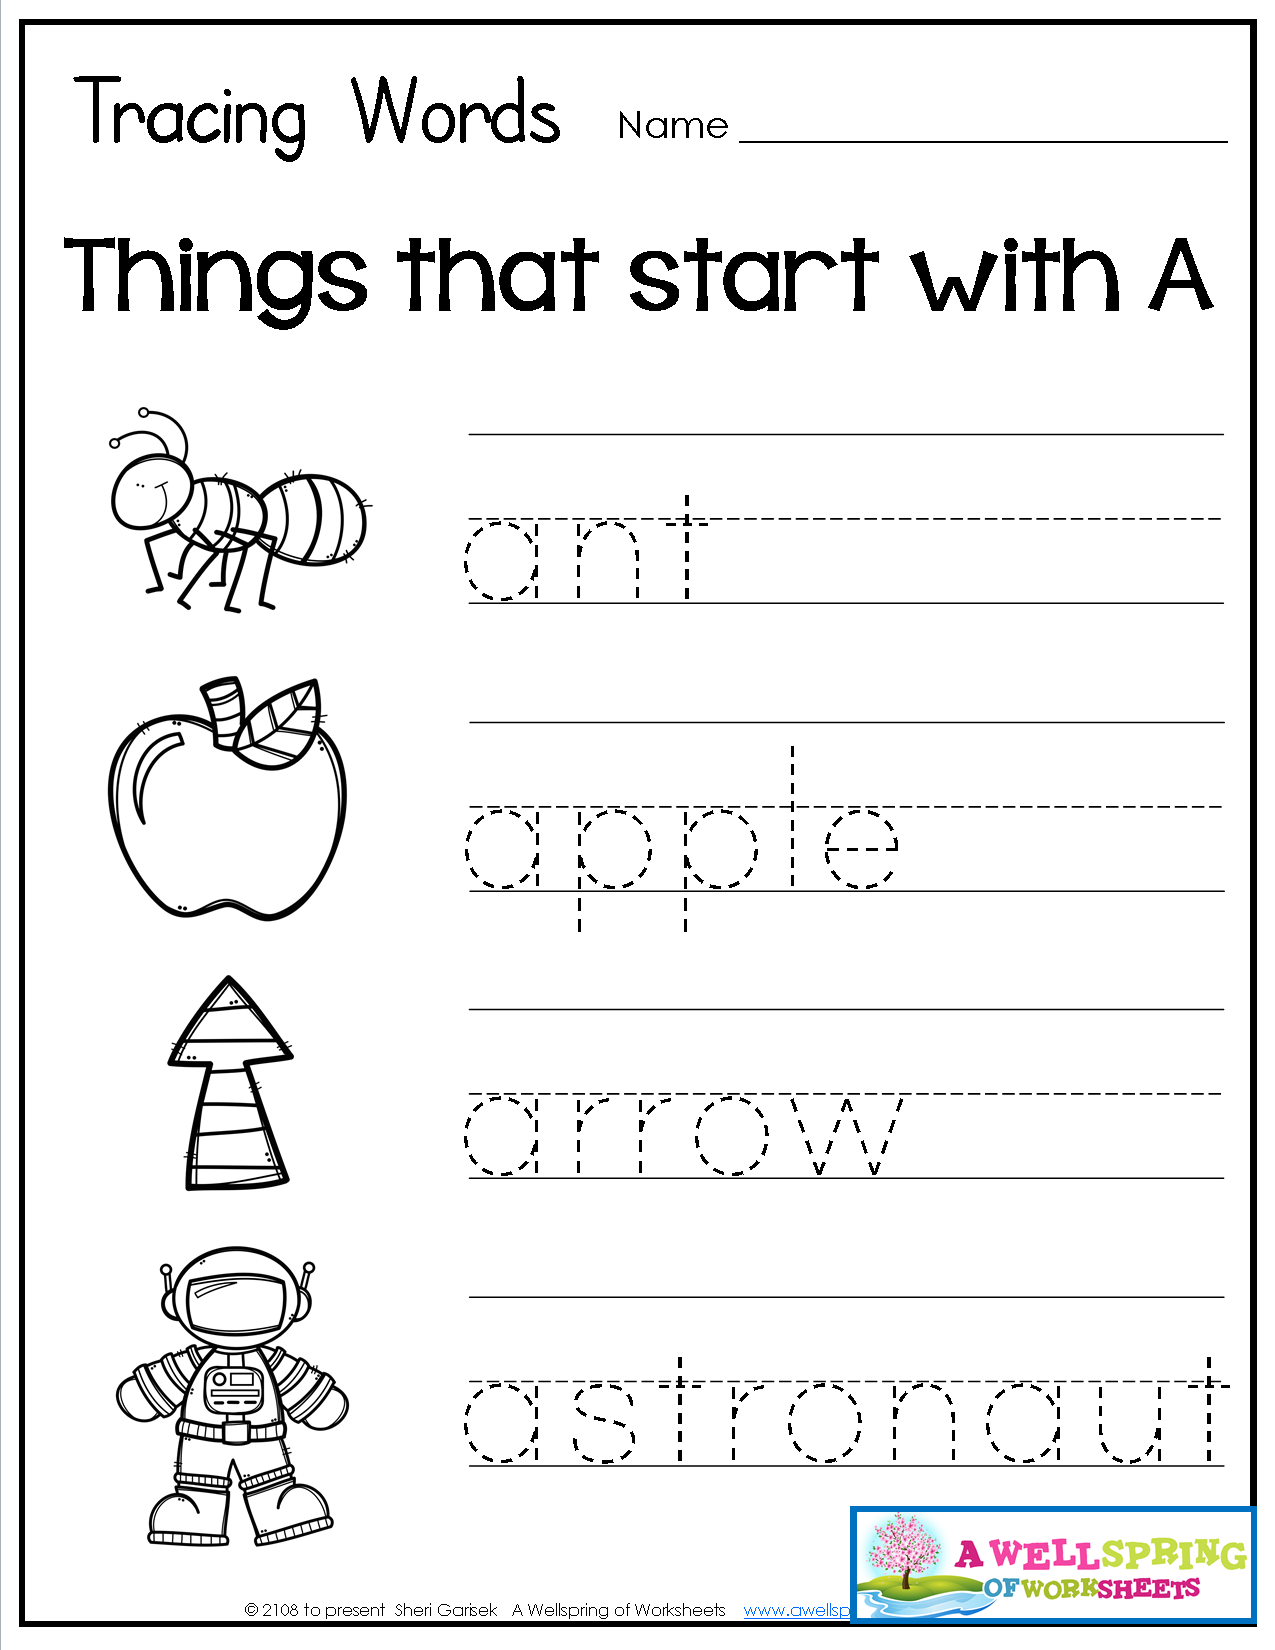 Tracing Words - Things That Start With A-Z | Alphabet intended for Name For Tracing